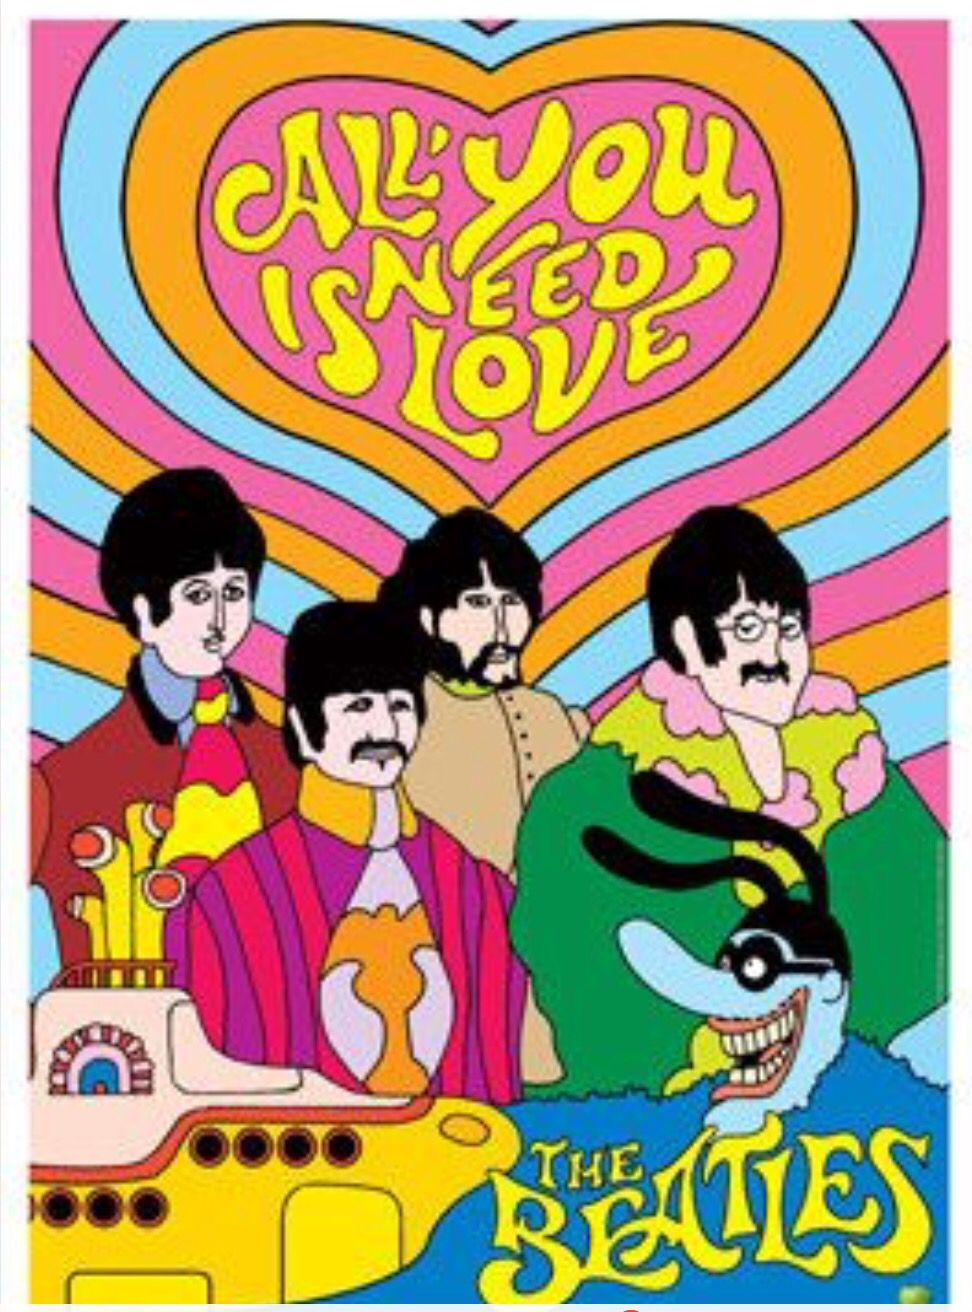 Обои The beatles, sgt. peppers lonely hearts club band, yellow submarine. Музыка foto 12